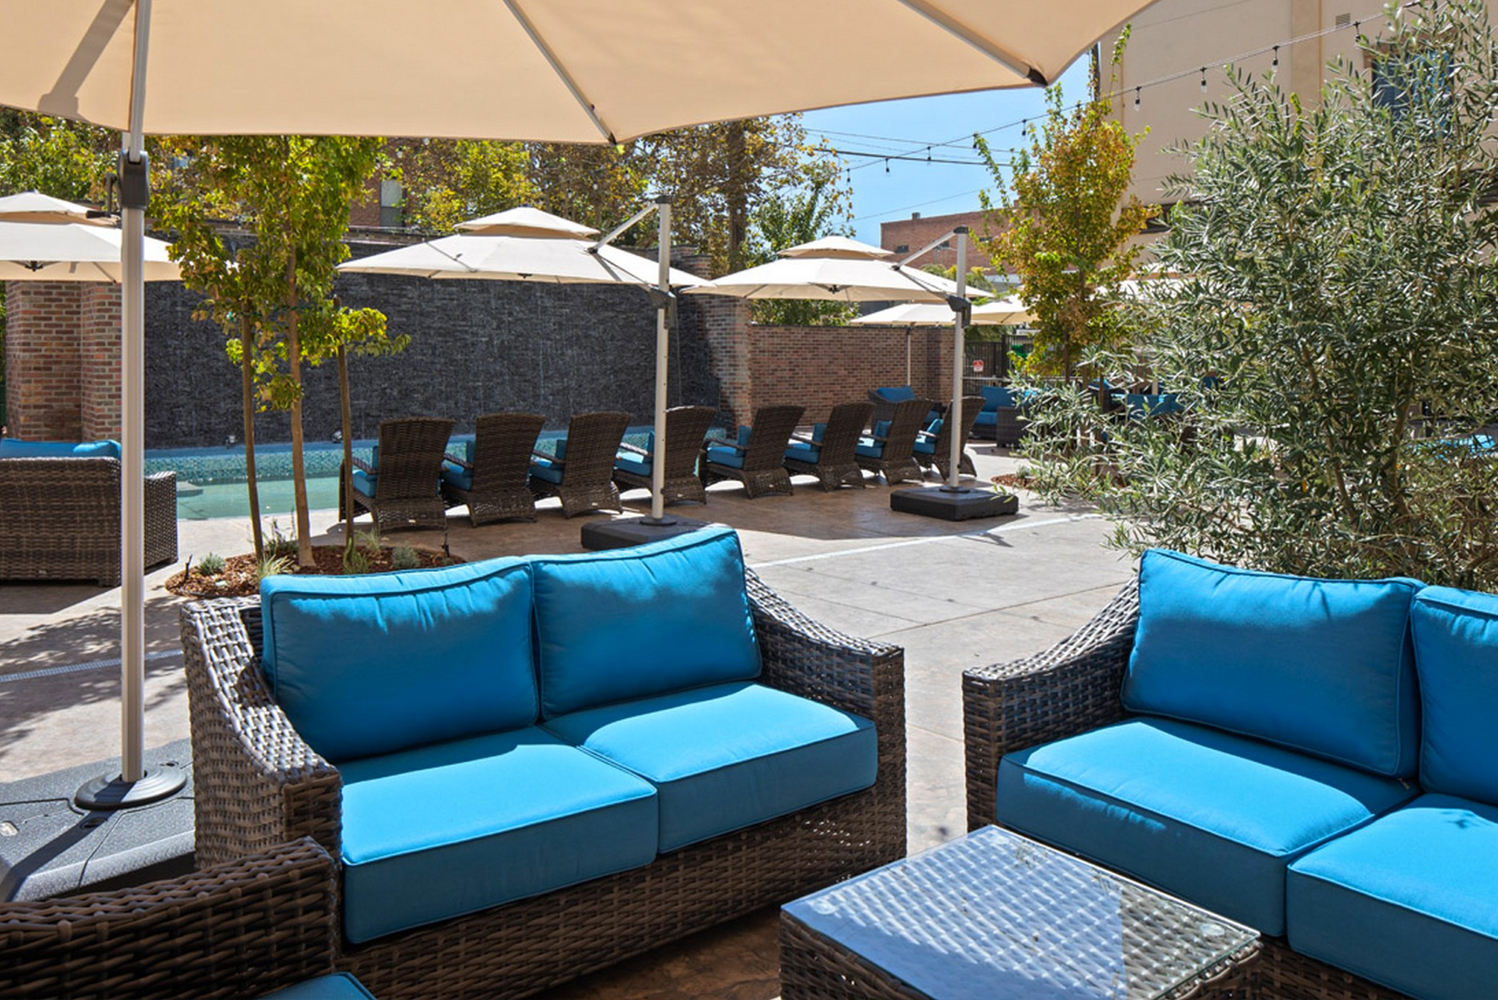 Hotel Winters has three dining options, including fine-dining restaurant Carboni's Ristorante, Bar and Market; Abbey's Rooftop & Lounge; Railroad Courtyard; and the Water Lounge.